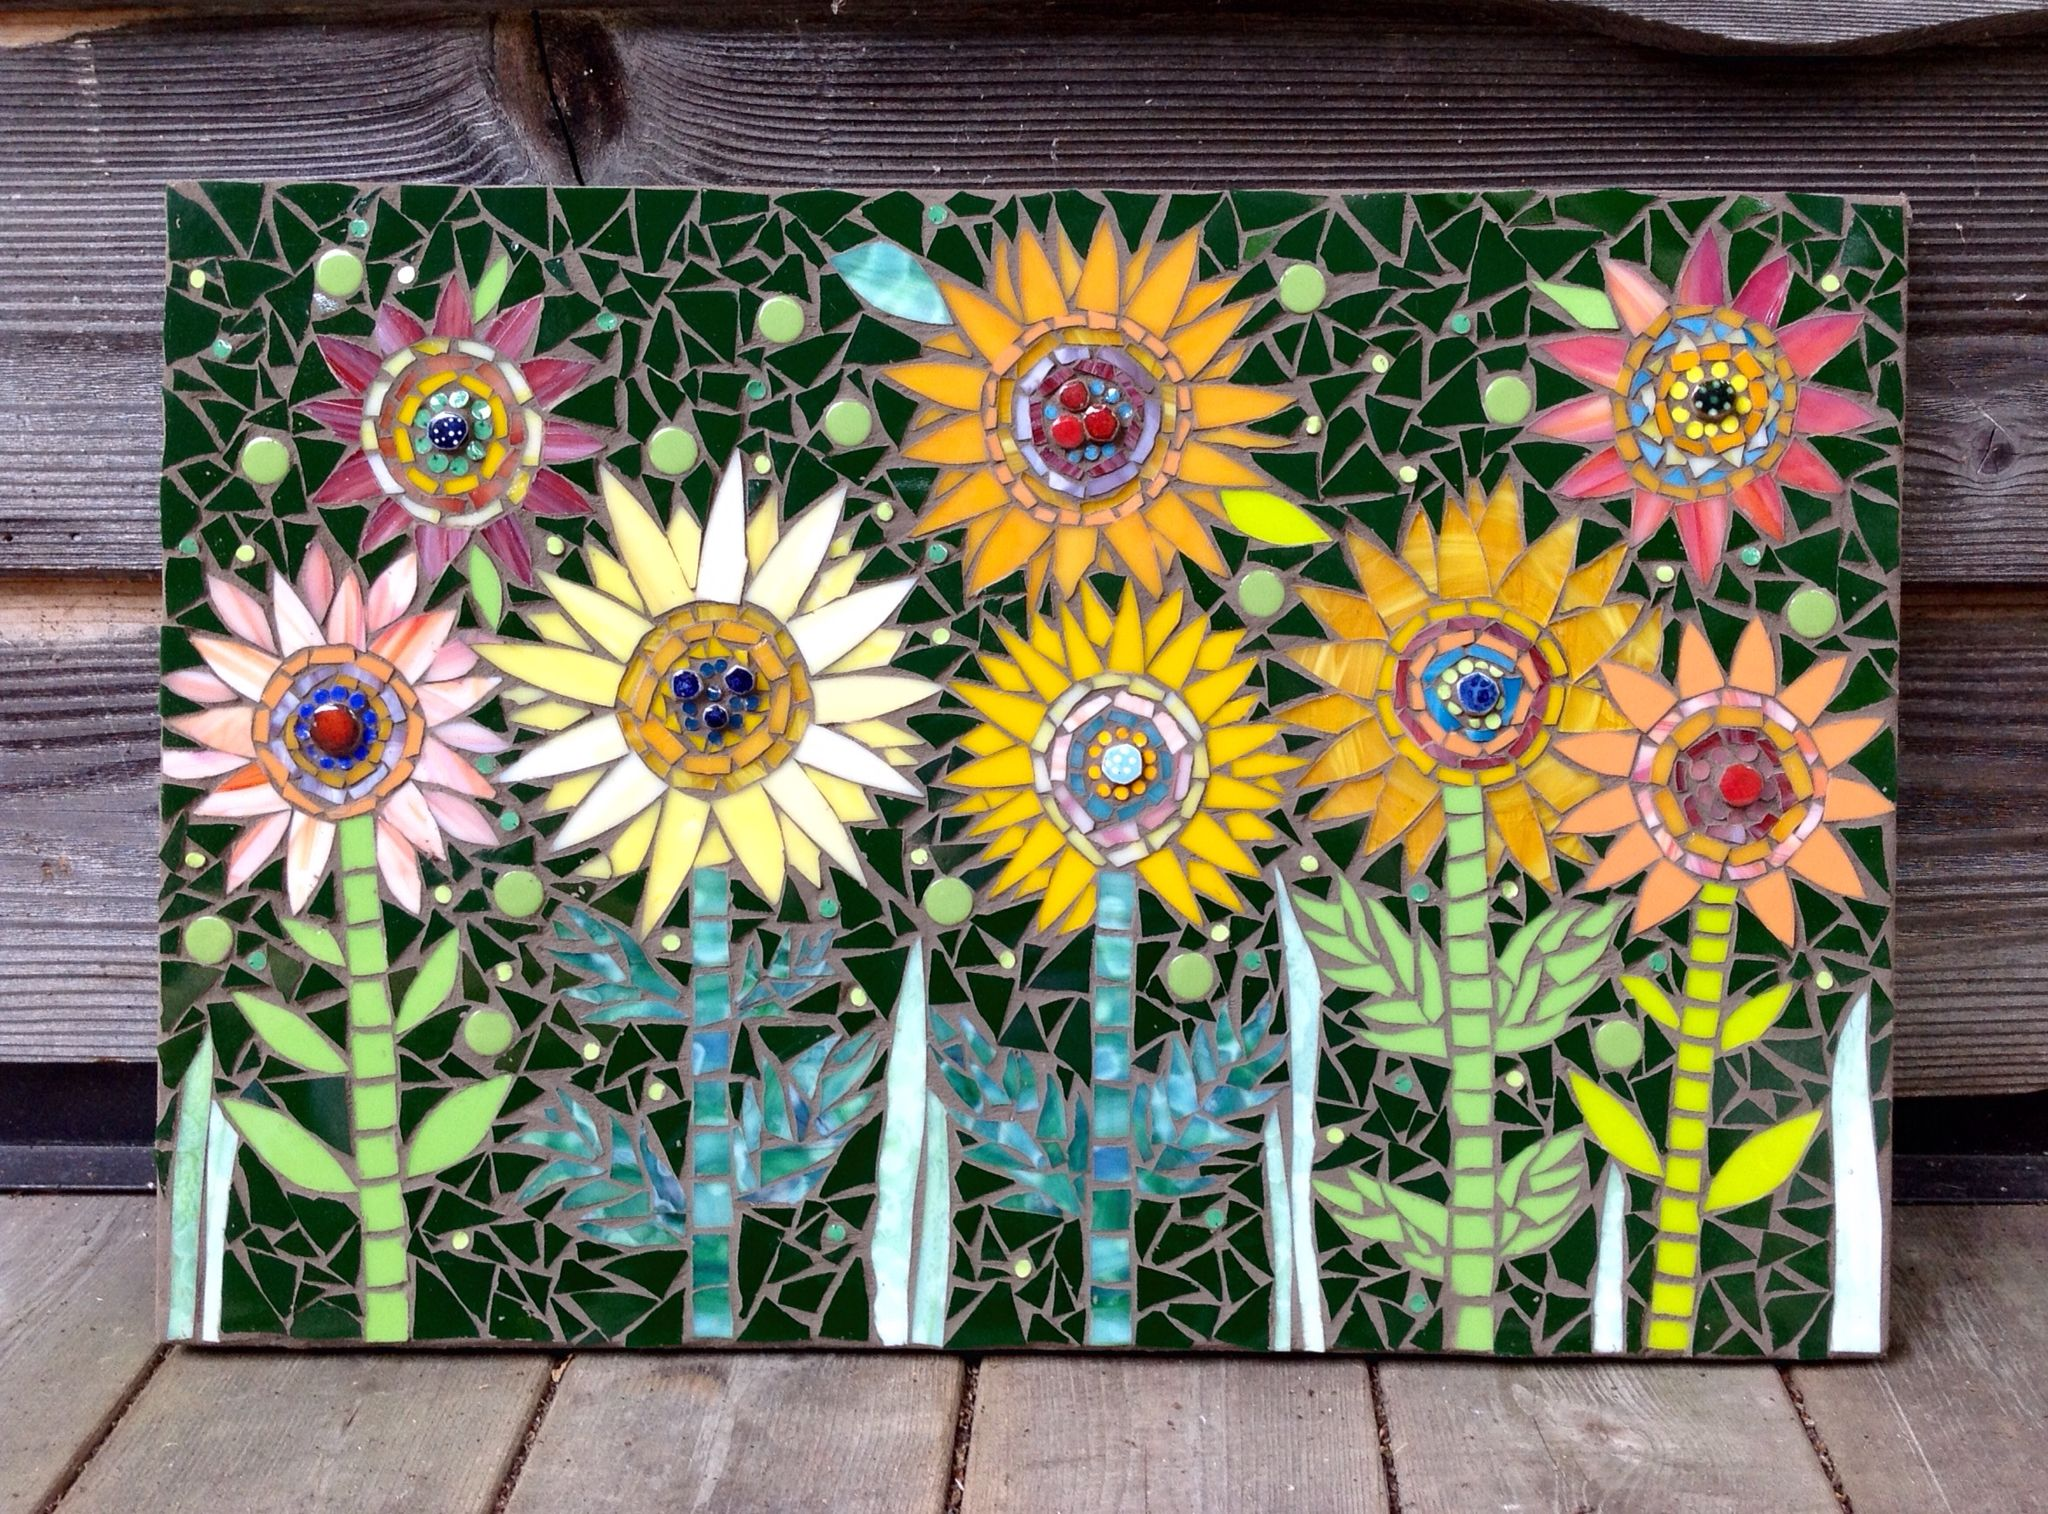 Zany Daisies Mixed Media Mosaic By 22mosaics Mosaic Garden Mosaic Flowers Mosaic Wall Art